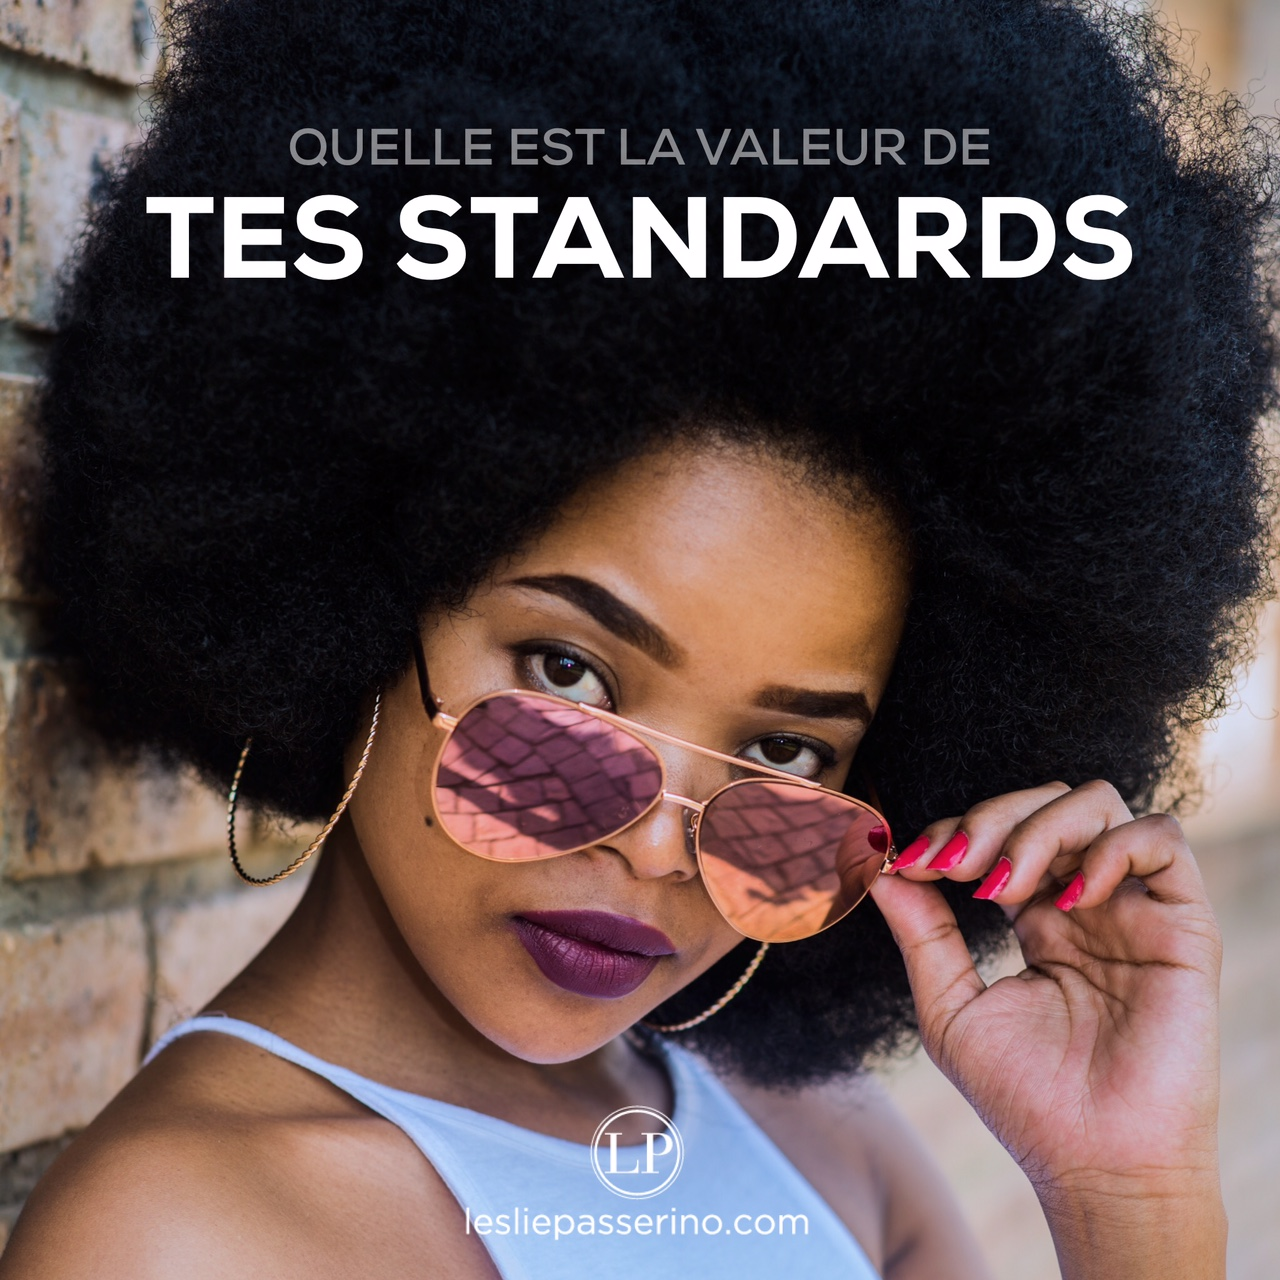 Podcast_quelle_est_la_valeur_de_tes_standards